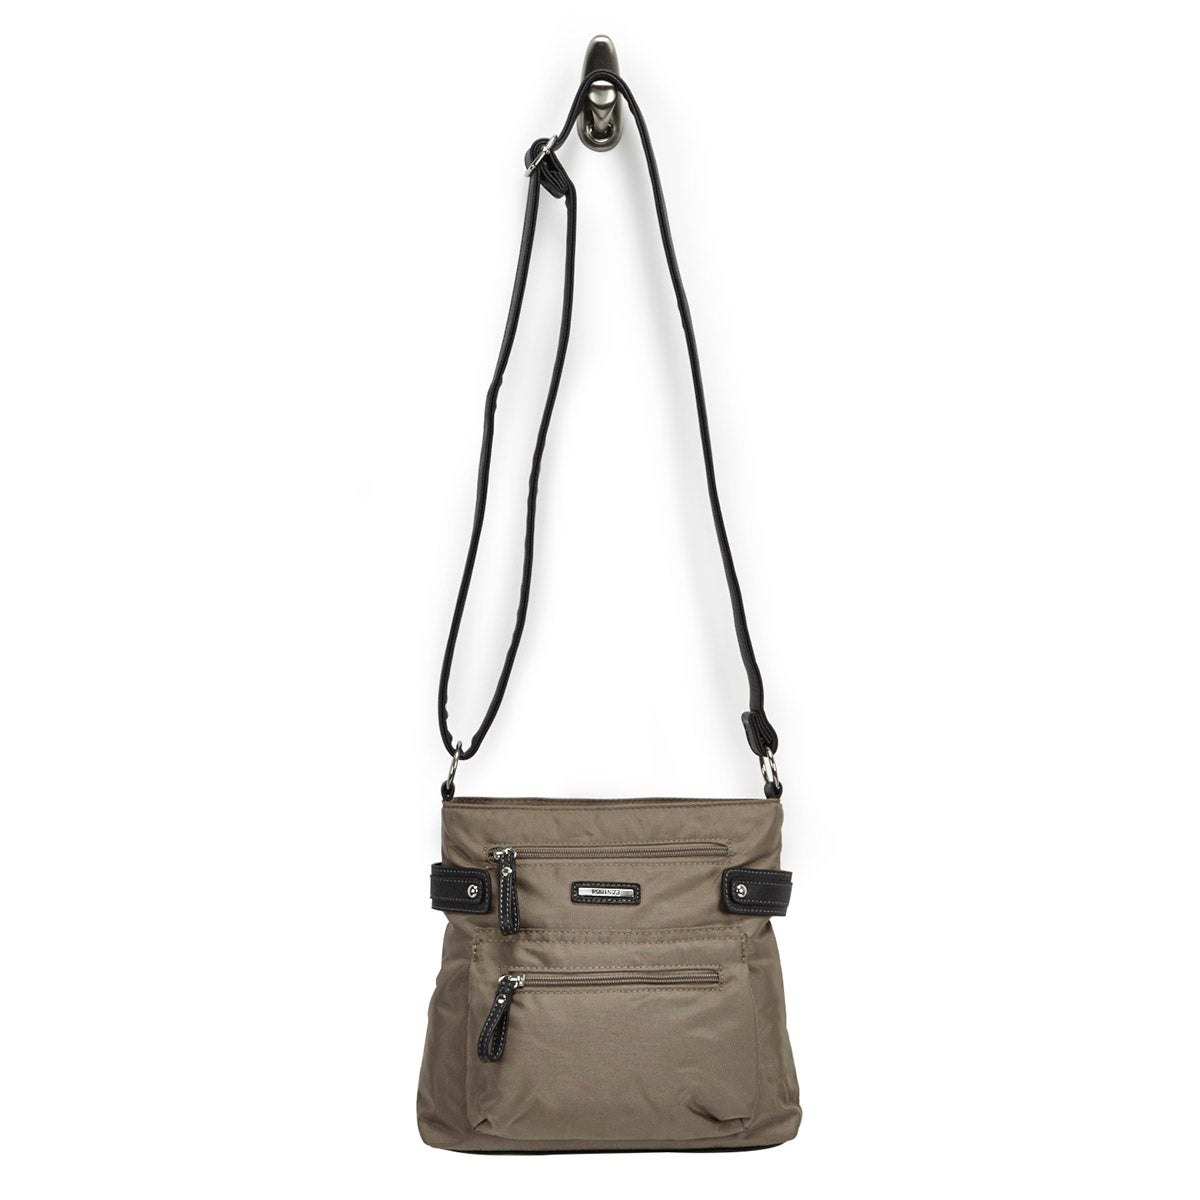 Lds taupe north/south crossbody bag